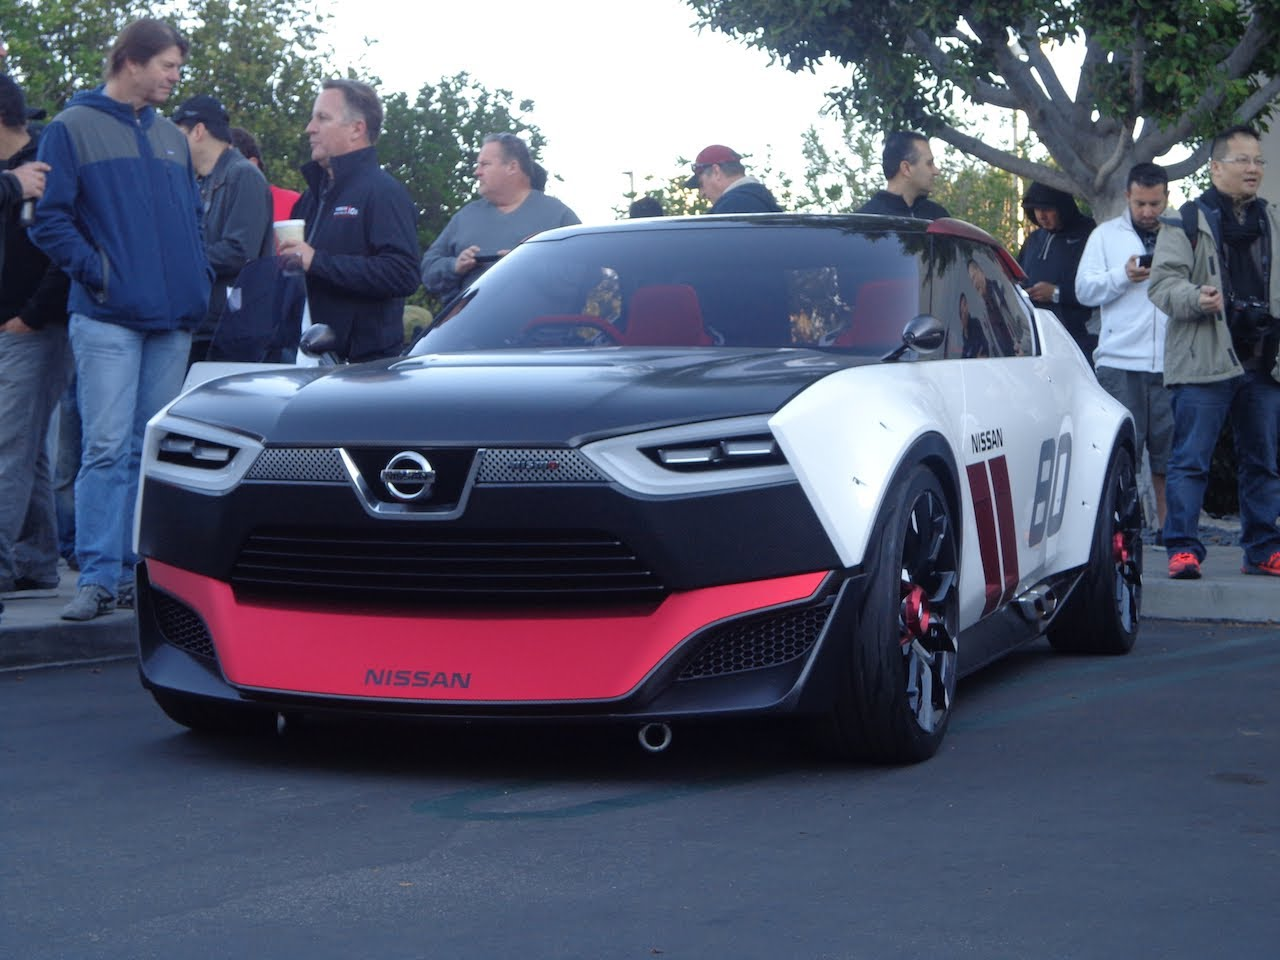 Nissan IDx and other Datsun/Nissan at Cars and Coffee - Skyline,510 Bluebird, GTR